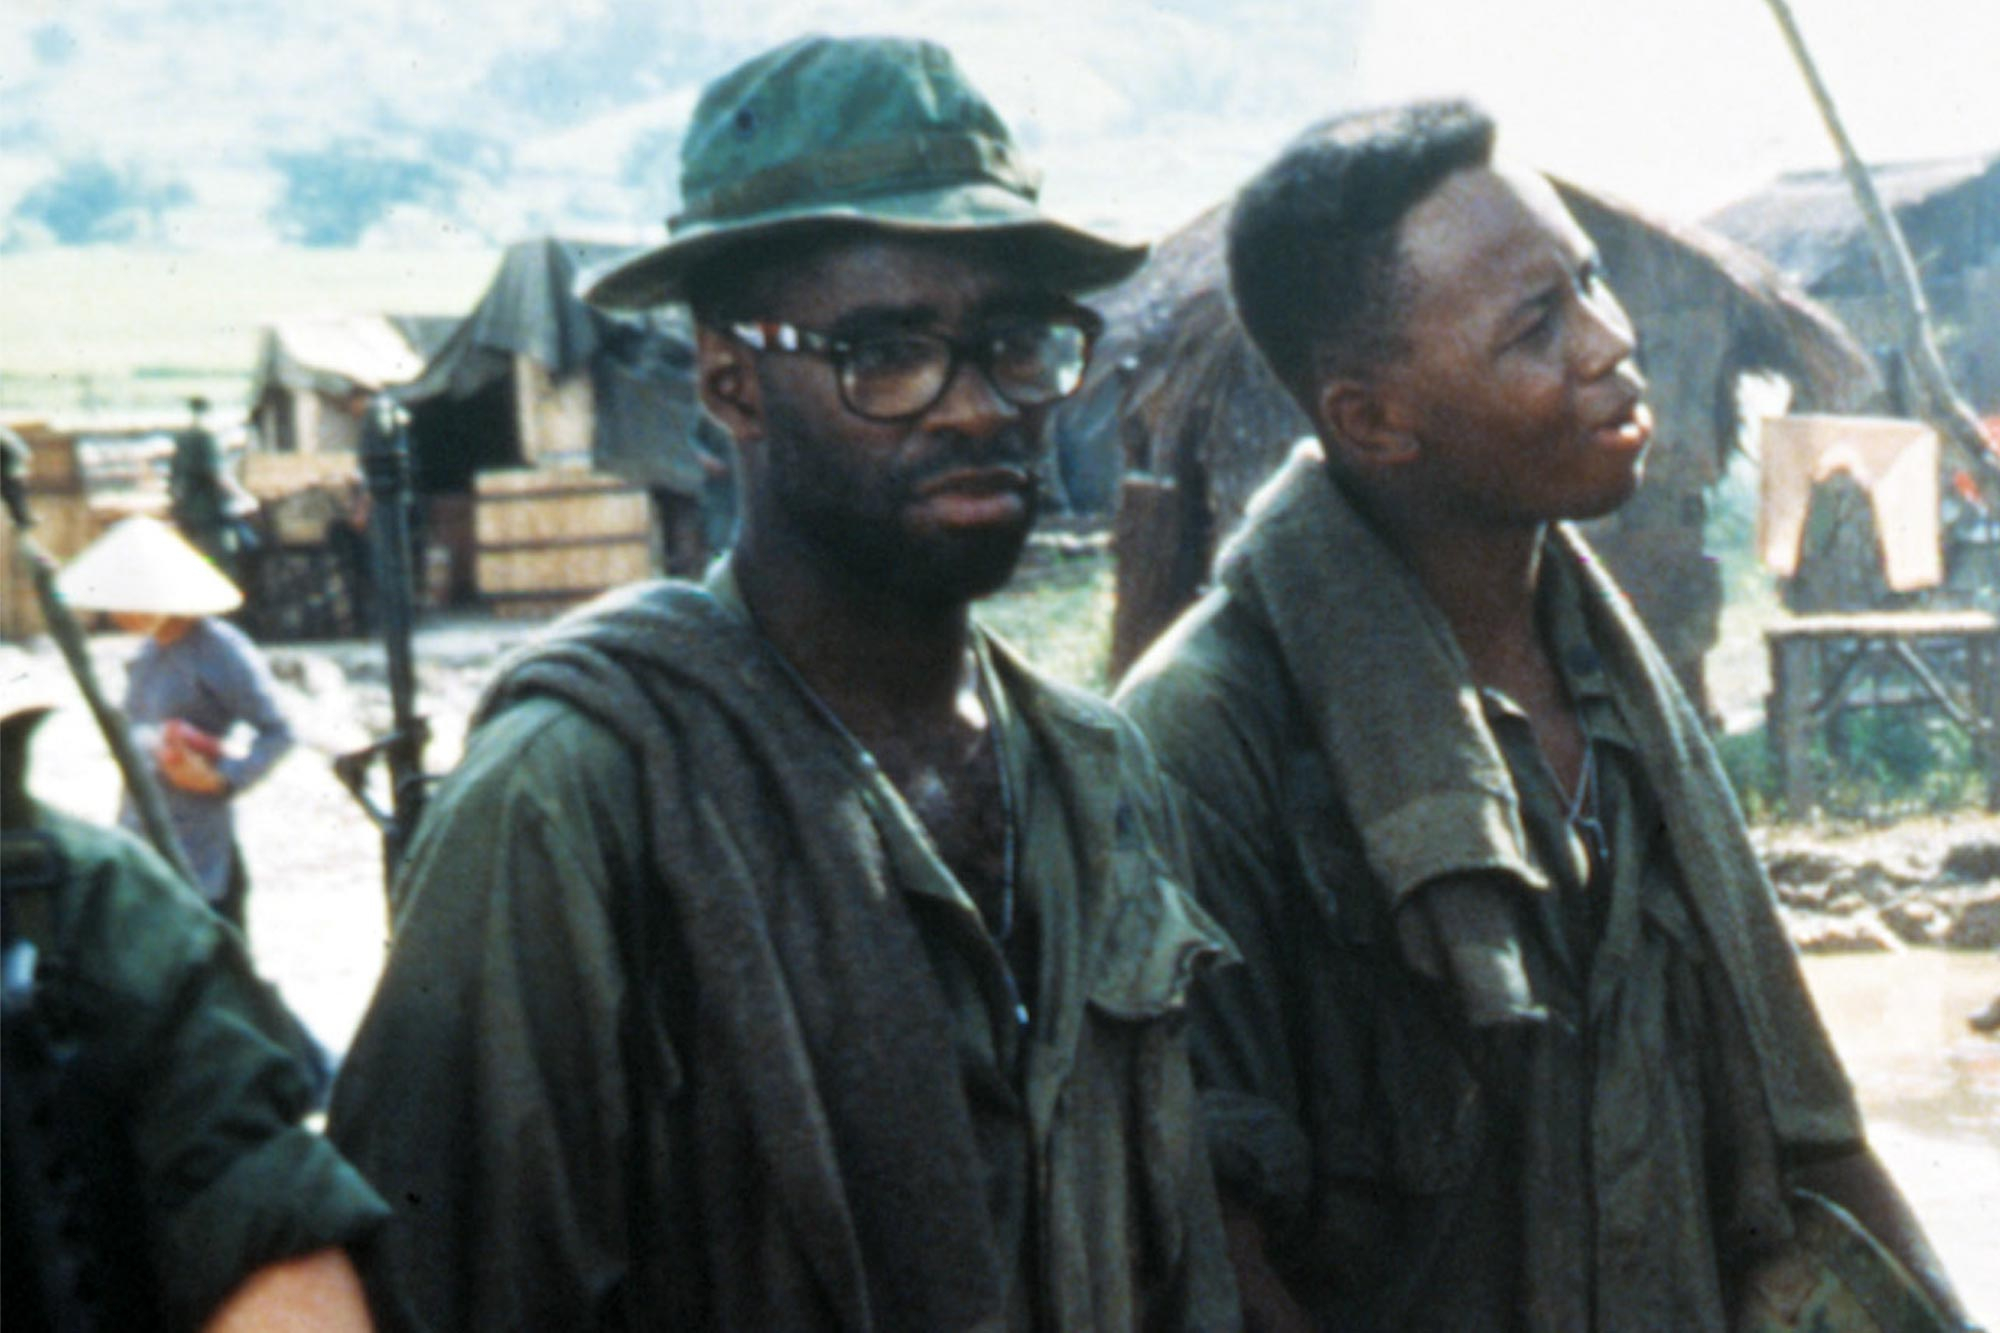 Courtney B. Vance recounts grueling death scene in his first film: 'It was horrific'